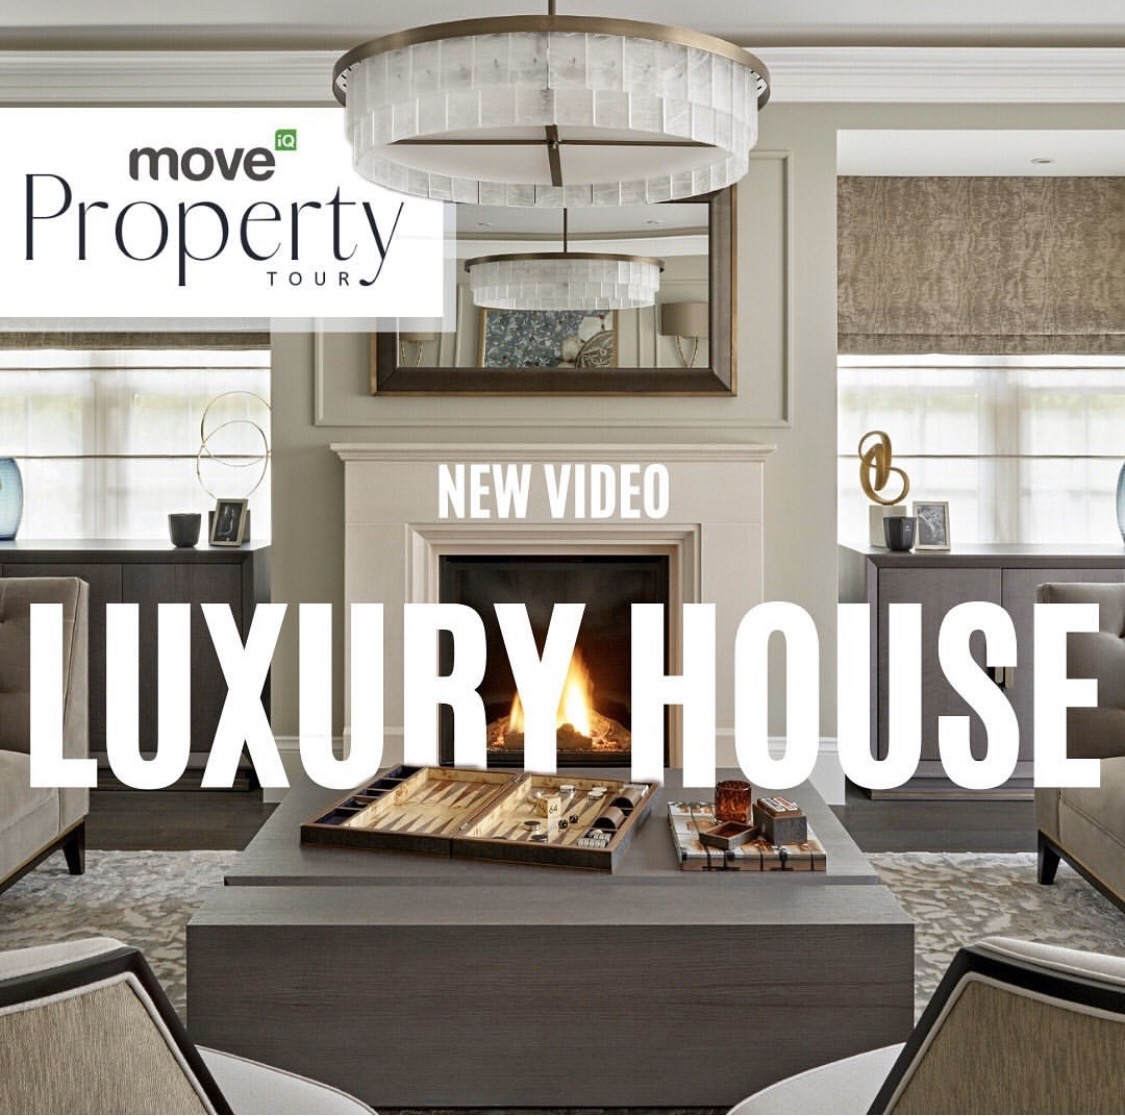 Luxury House Tour UK With Phil Spencer's Move IQ